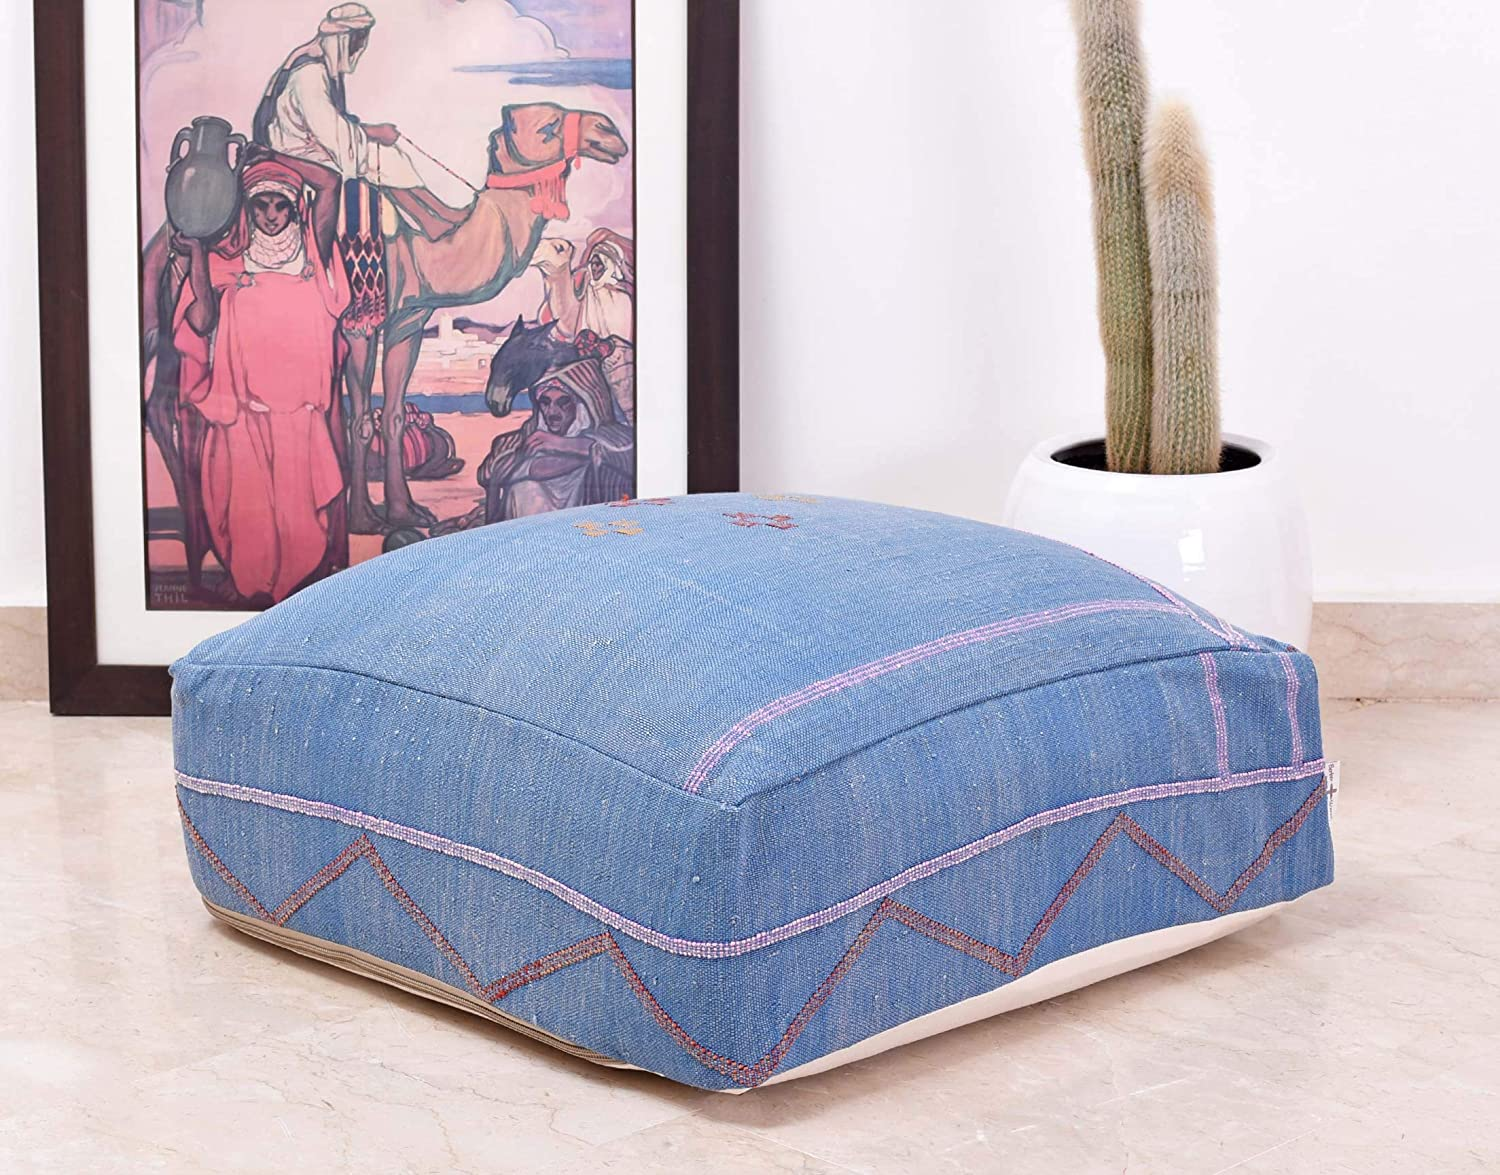 Moroccan Cactus Free shipping on posting reviews Floor Pouf Cover foo Ottoman Bohemian Handmade Today's only